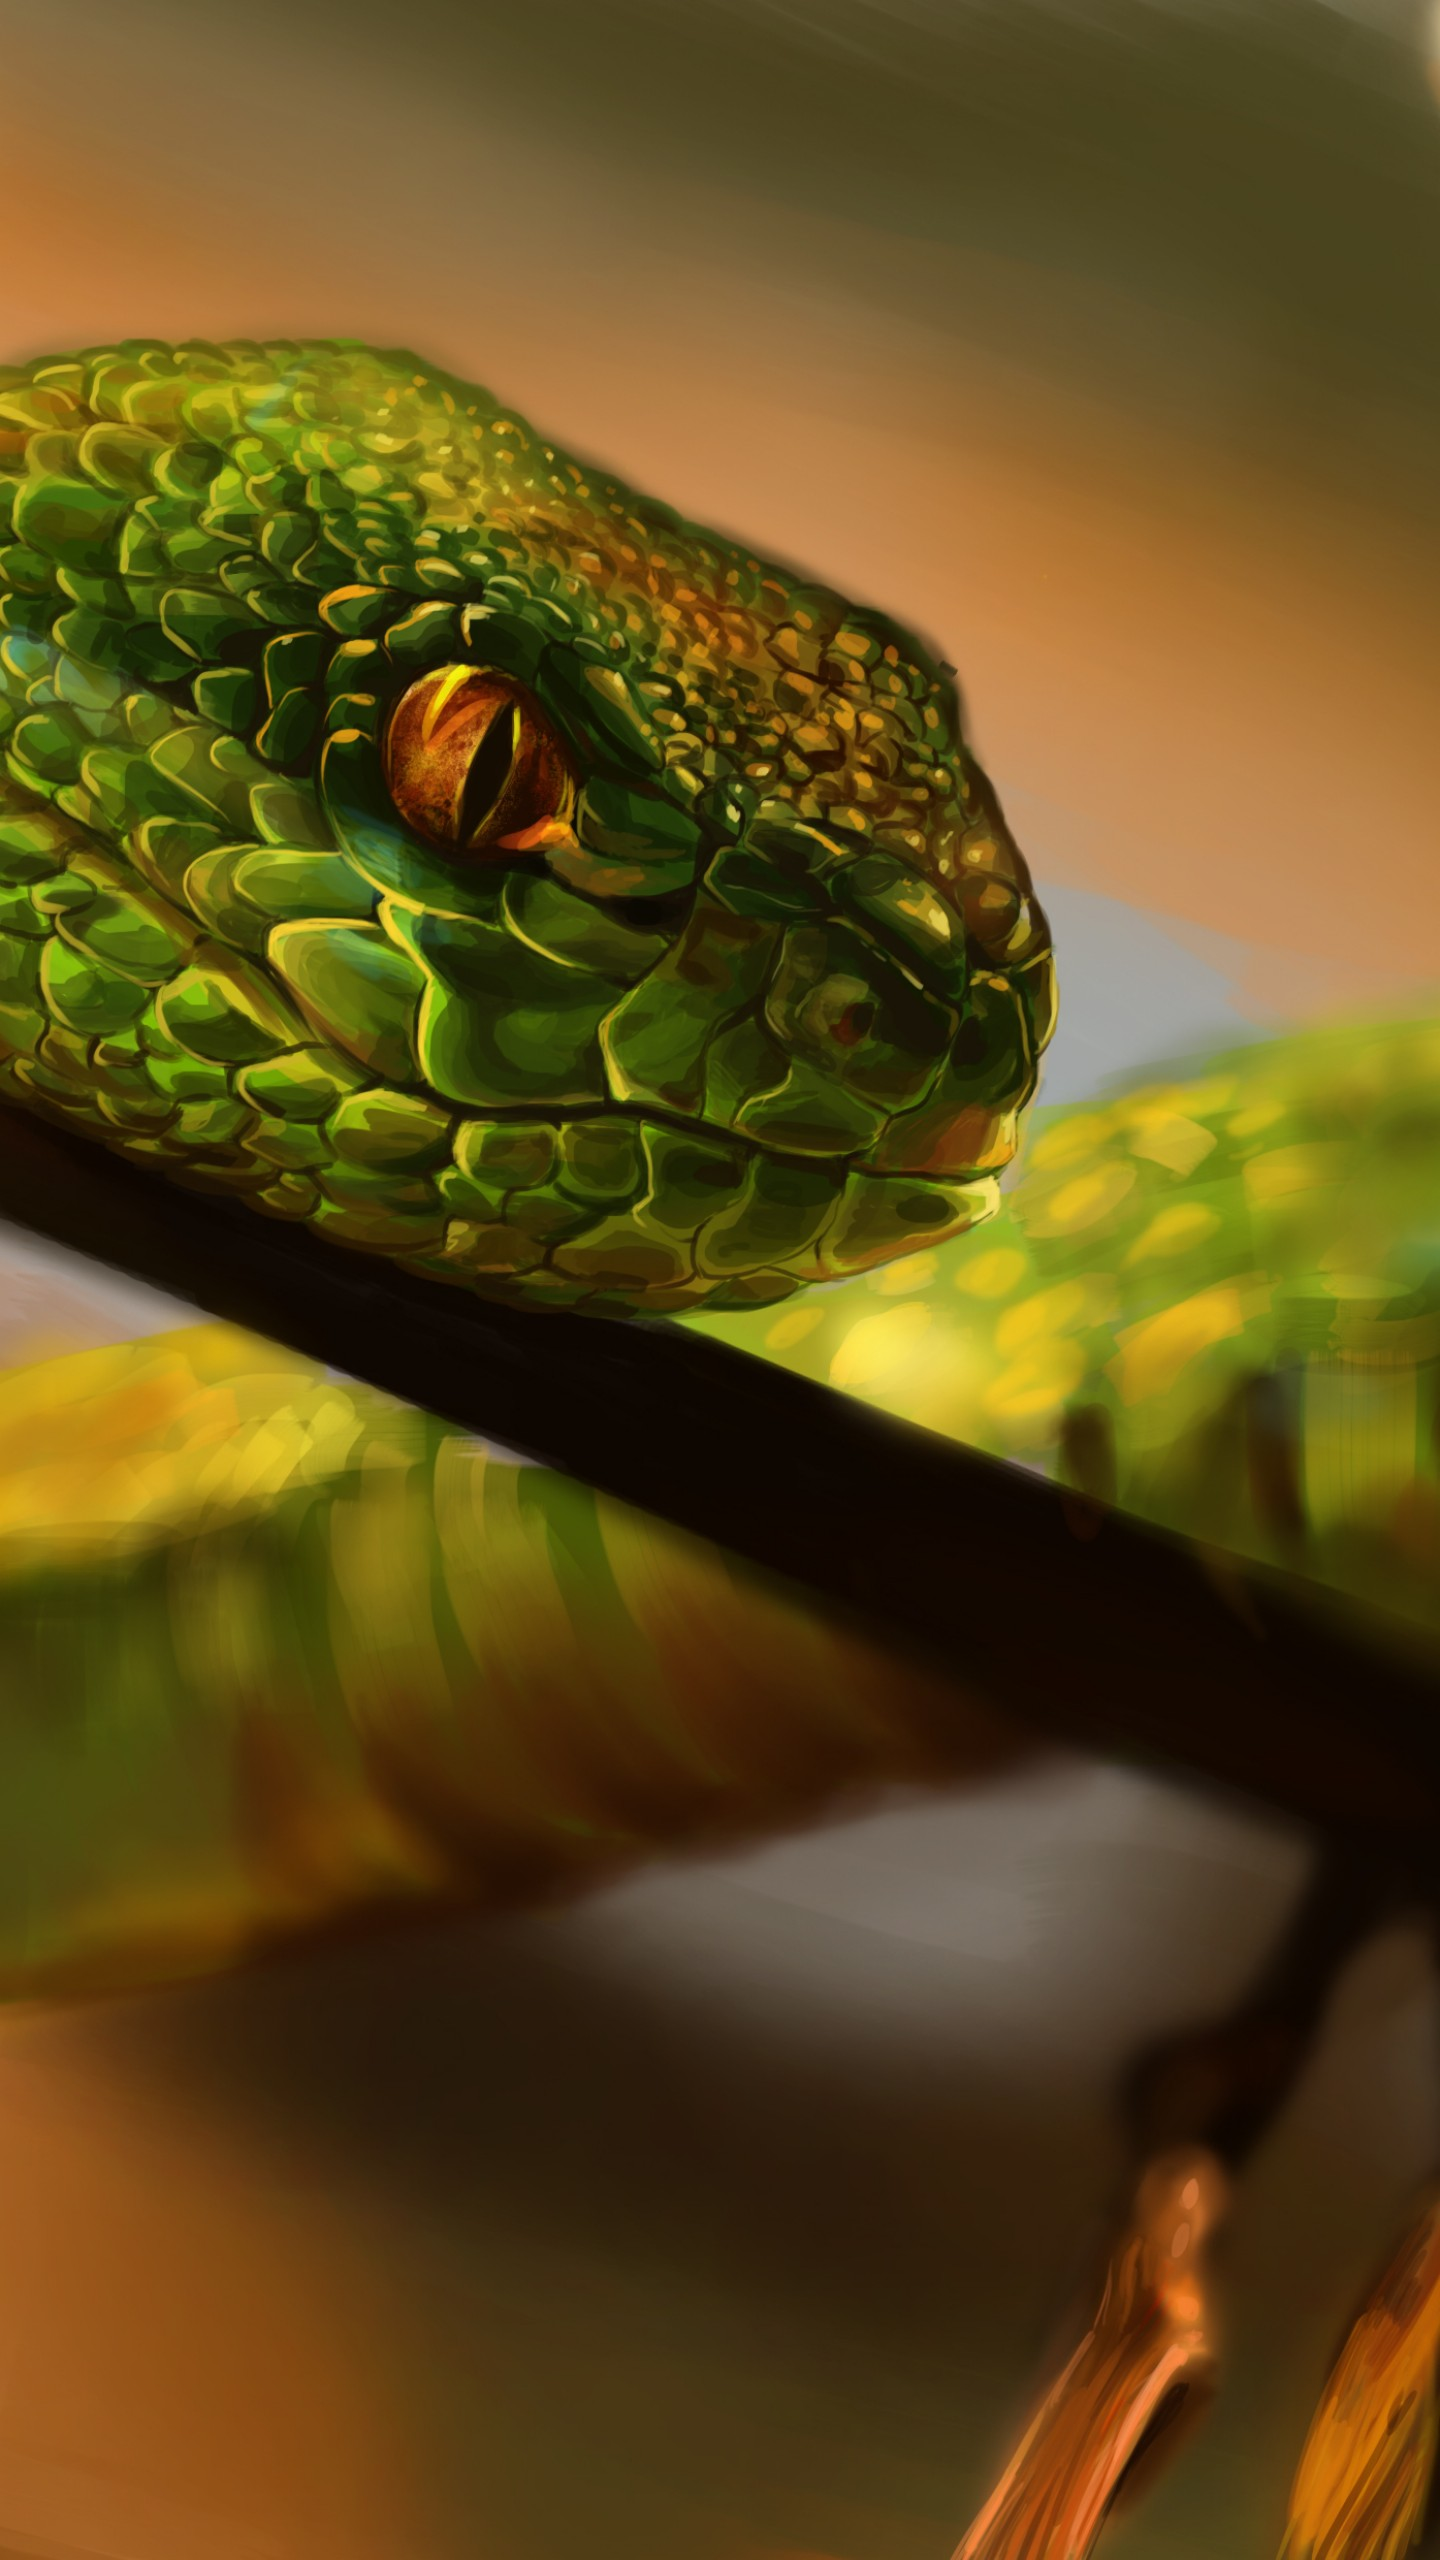 Snake Eyes Hd Wallpapers Wallpaper Snake Green Reptile Eyes Art Animals 712